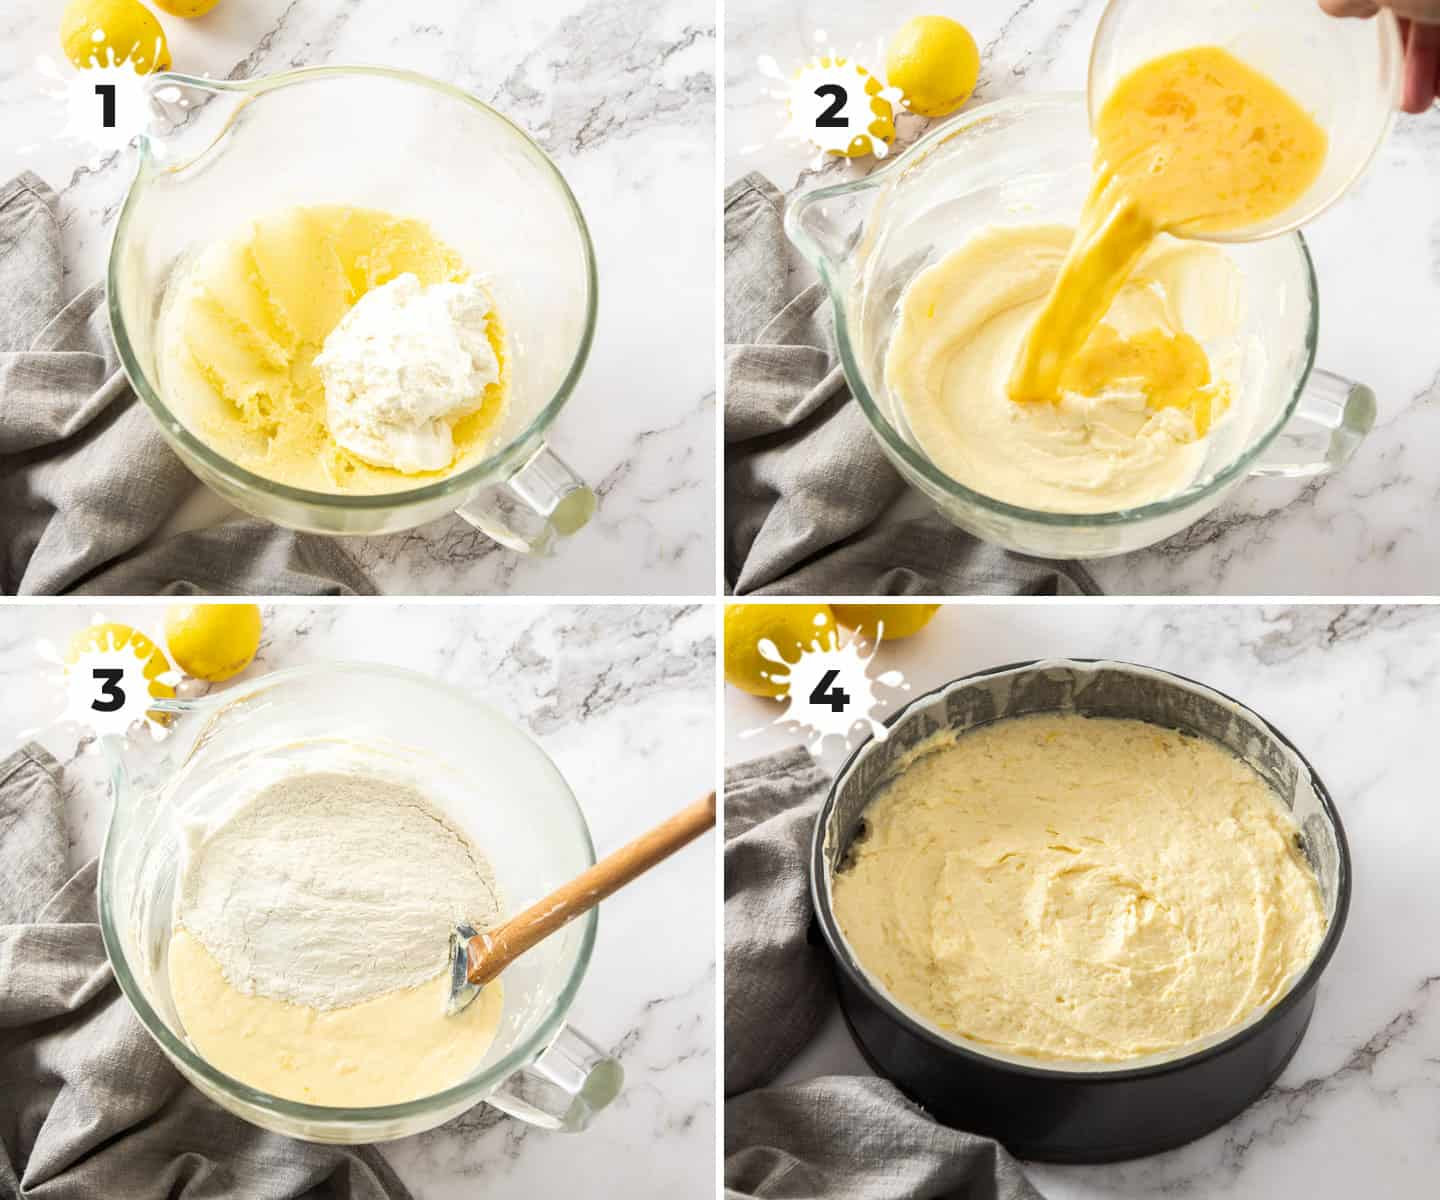 4 images in a collage showing how to make the batter for a lemon ricotta cake.